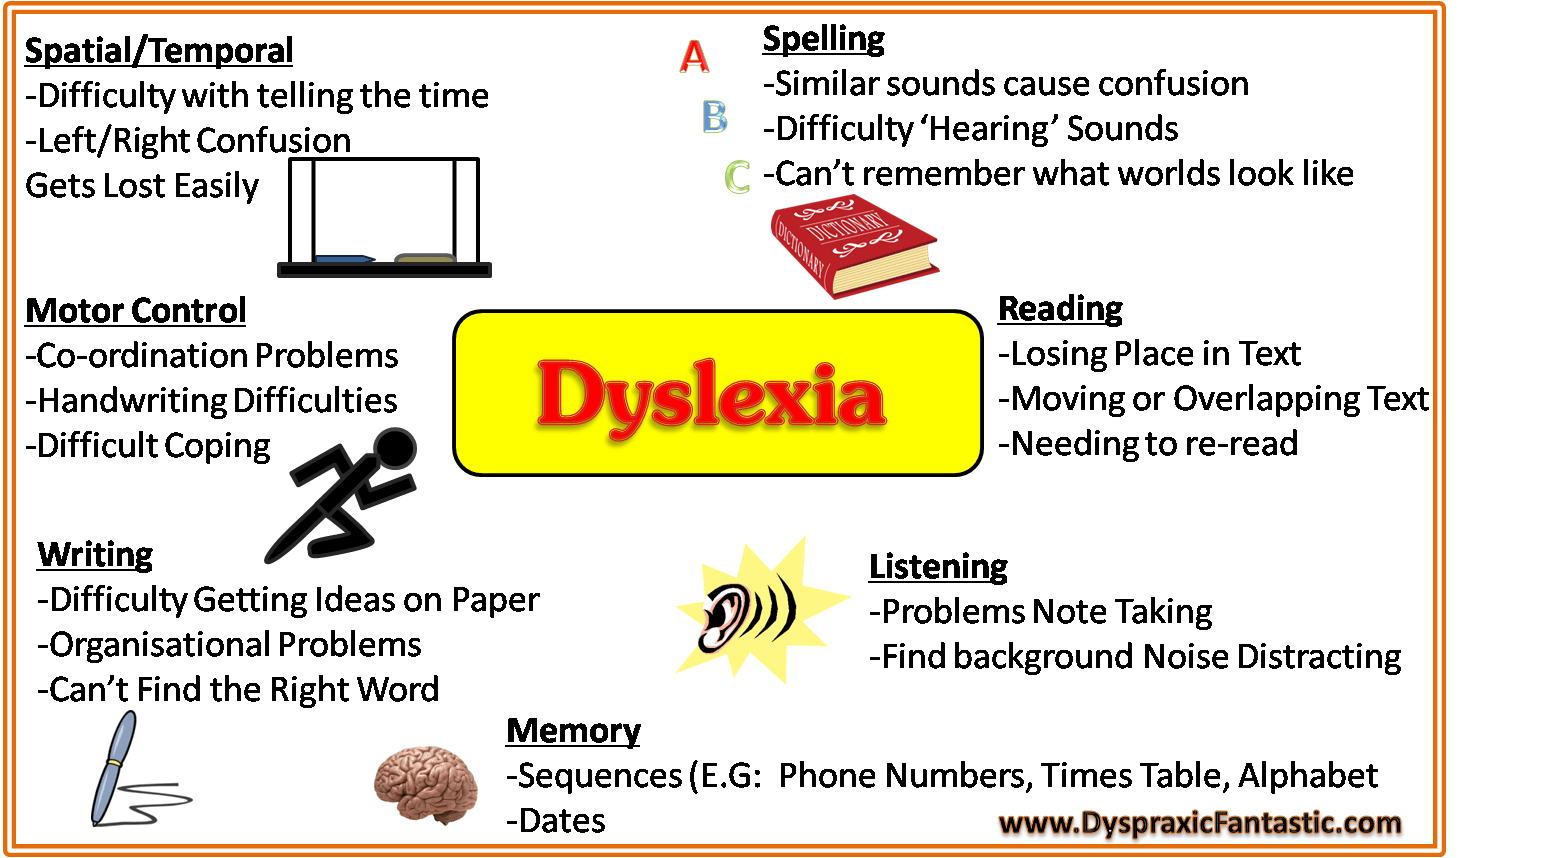 Dyspraxia writing aids for visually impaired